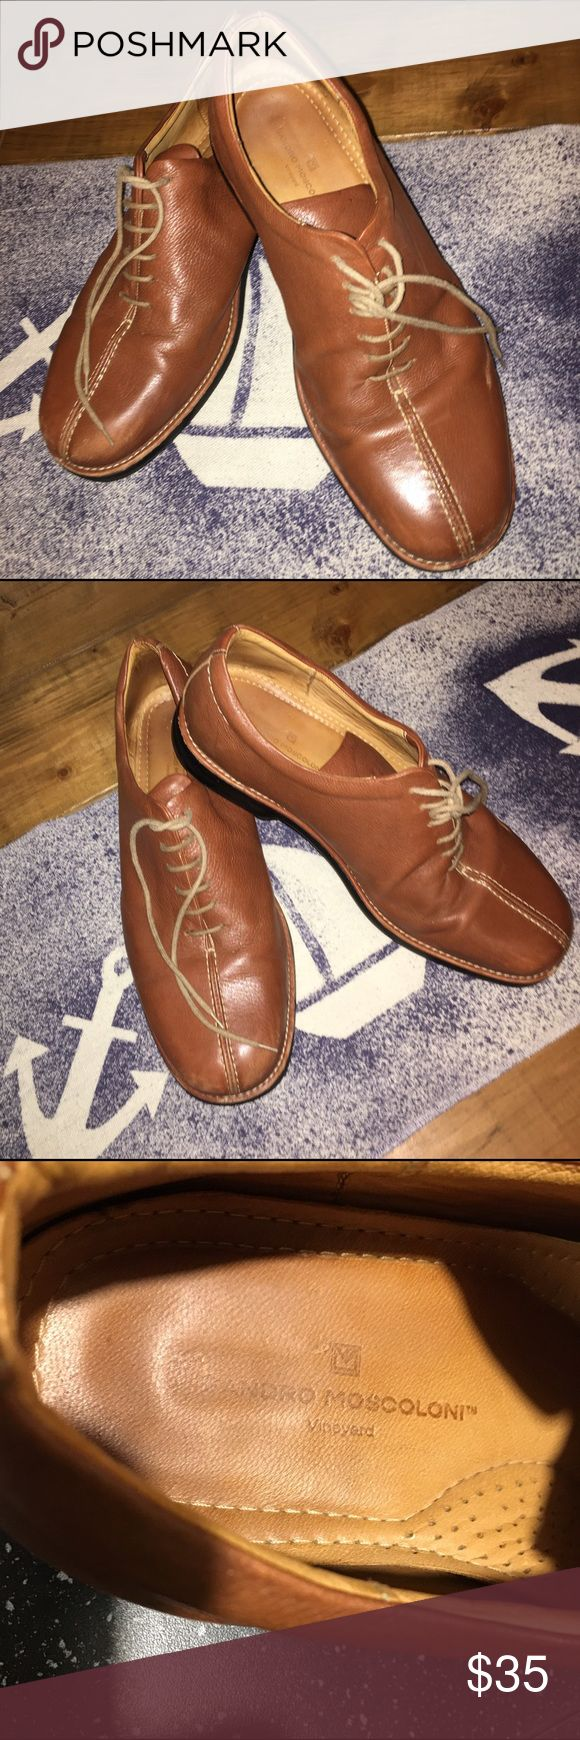 Mens Shoes Sandro Moscoloni Vineyard Oxfords Sz13D Leather Oxfords Tan Color. Pre-owned with some minor scuffs, please see last 3 photos. Soles very good still. There is lots of wear left on these quality shoes. Please ask if you have any questions. See my other items as well. Sandro Moscoloni Shoes Oxfords & Derbys